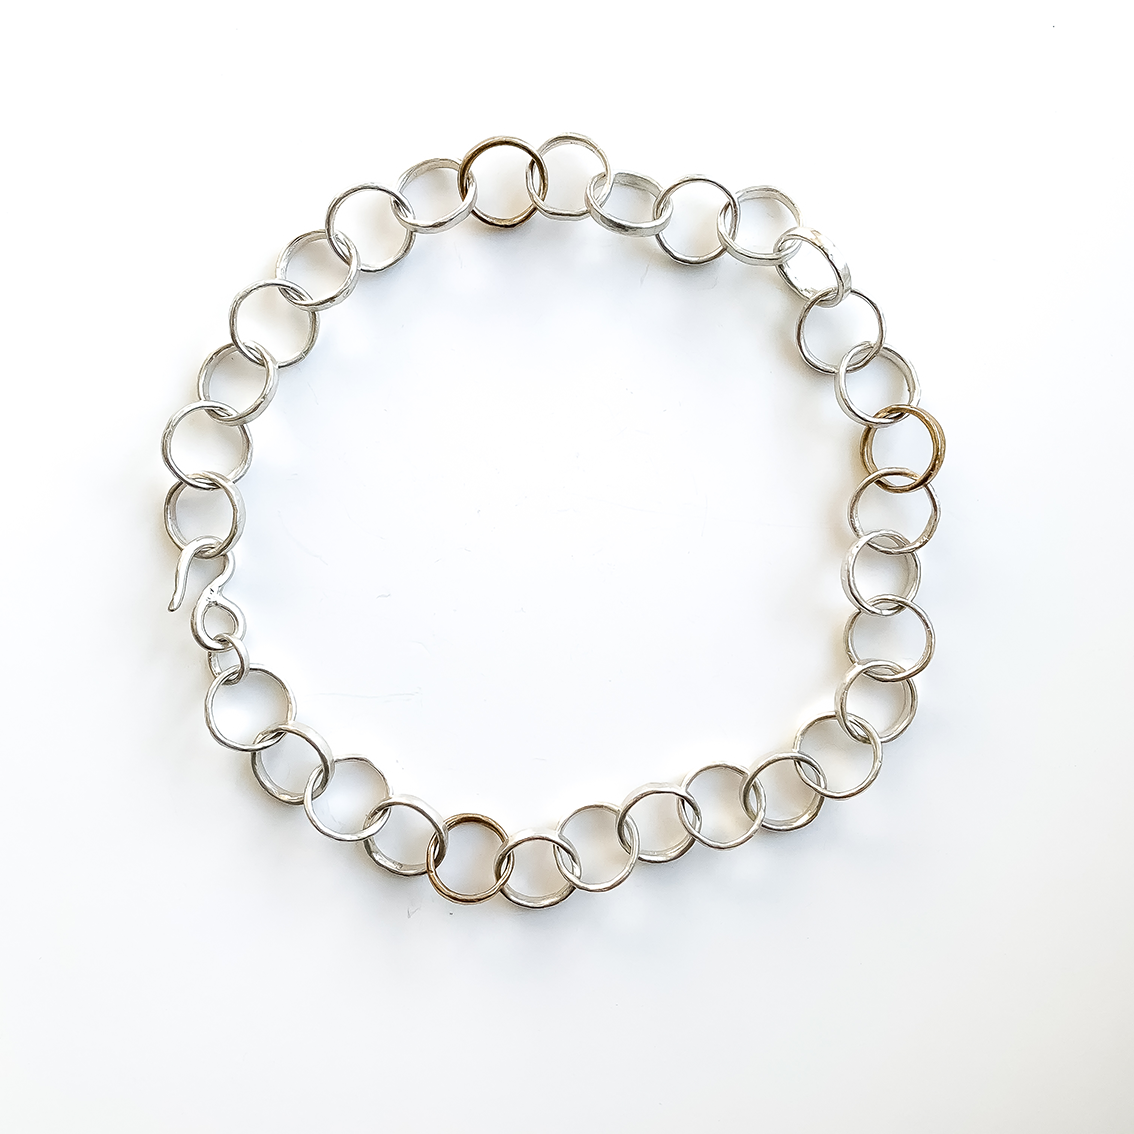 Organic Tales – Heavy Organic Circle Chain Necklace